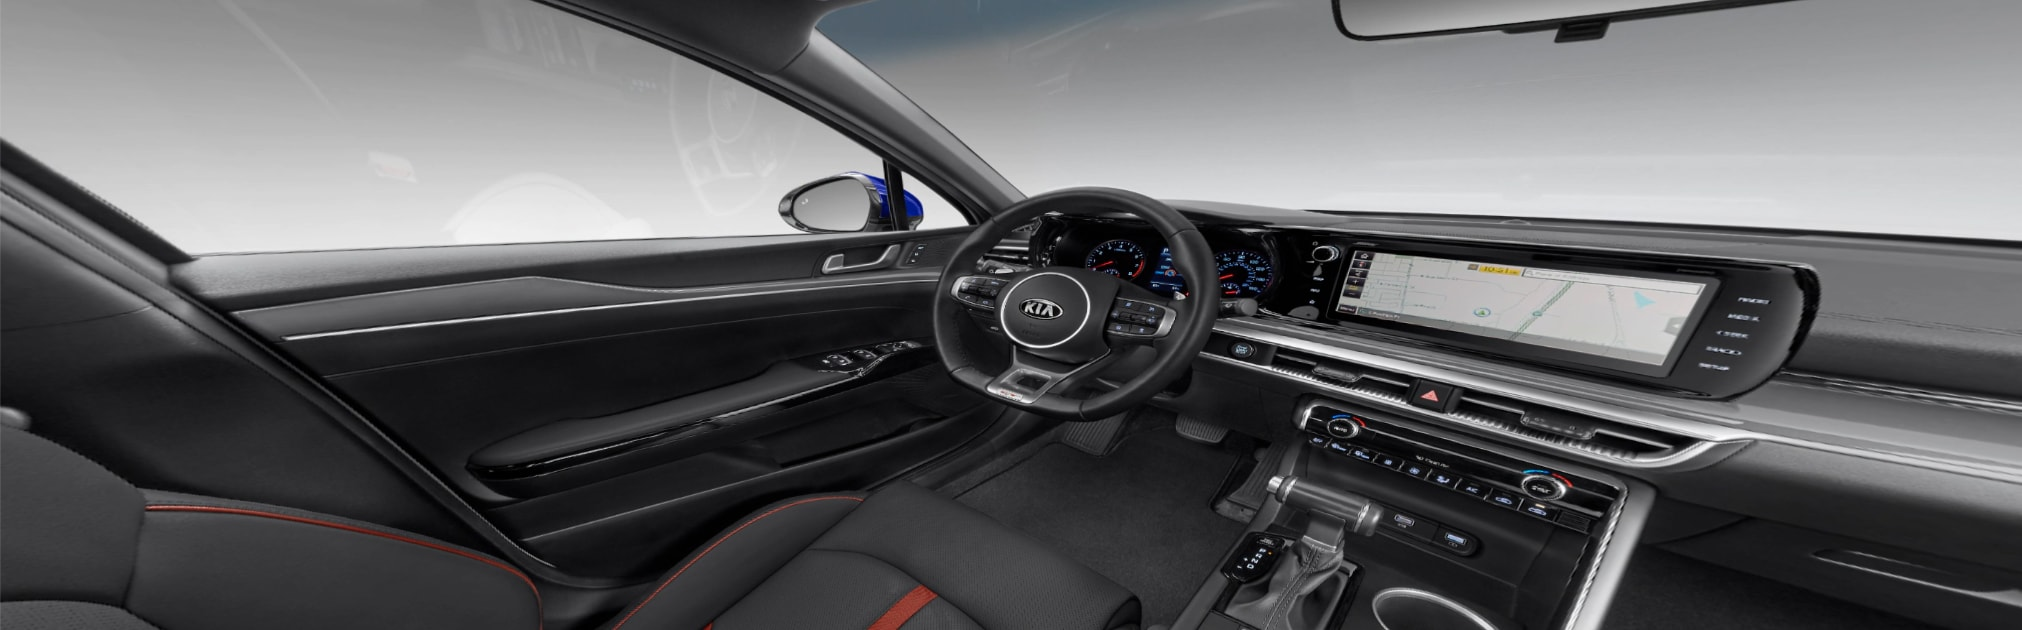 2021 Kia Seltos Interior Leatherette with Red Accents